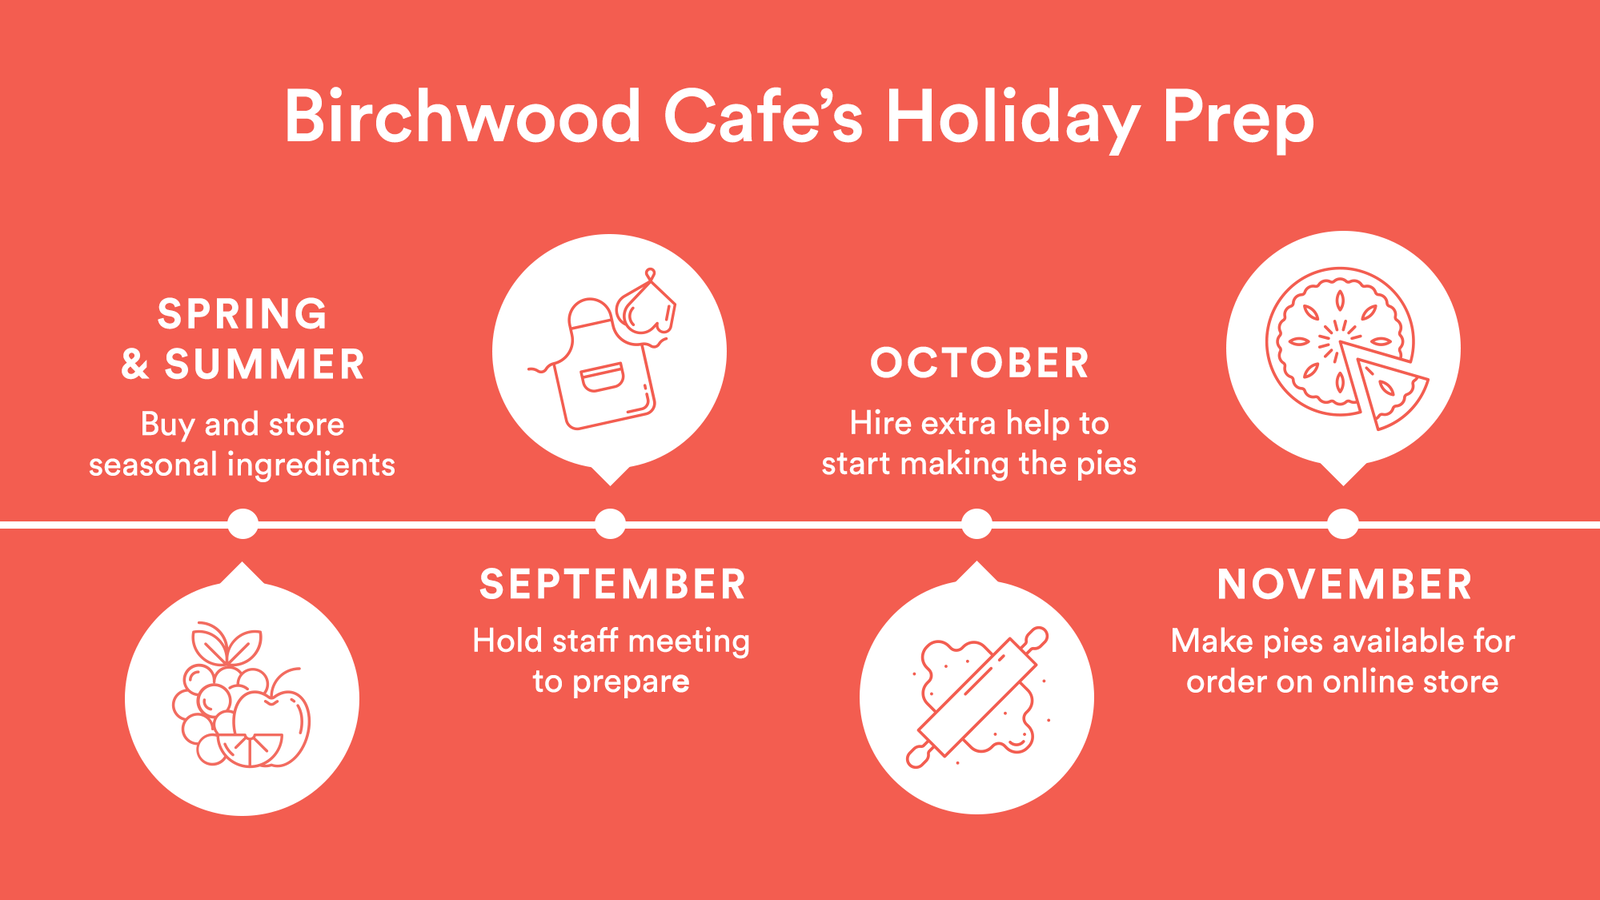 Birchwood Cafe's Holiday Prep Timeline